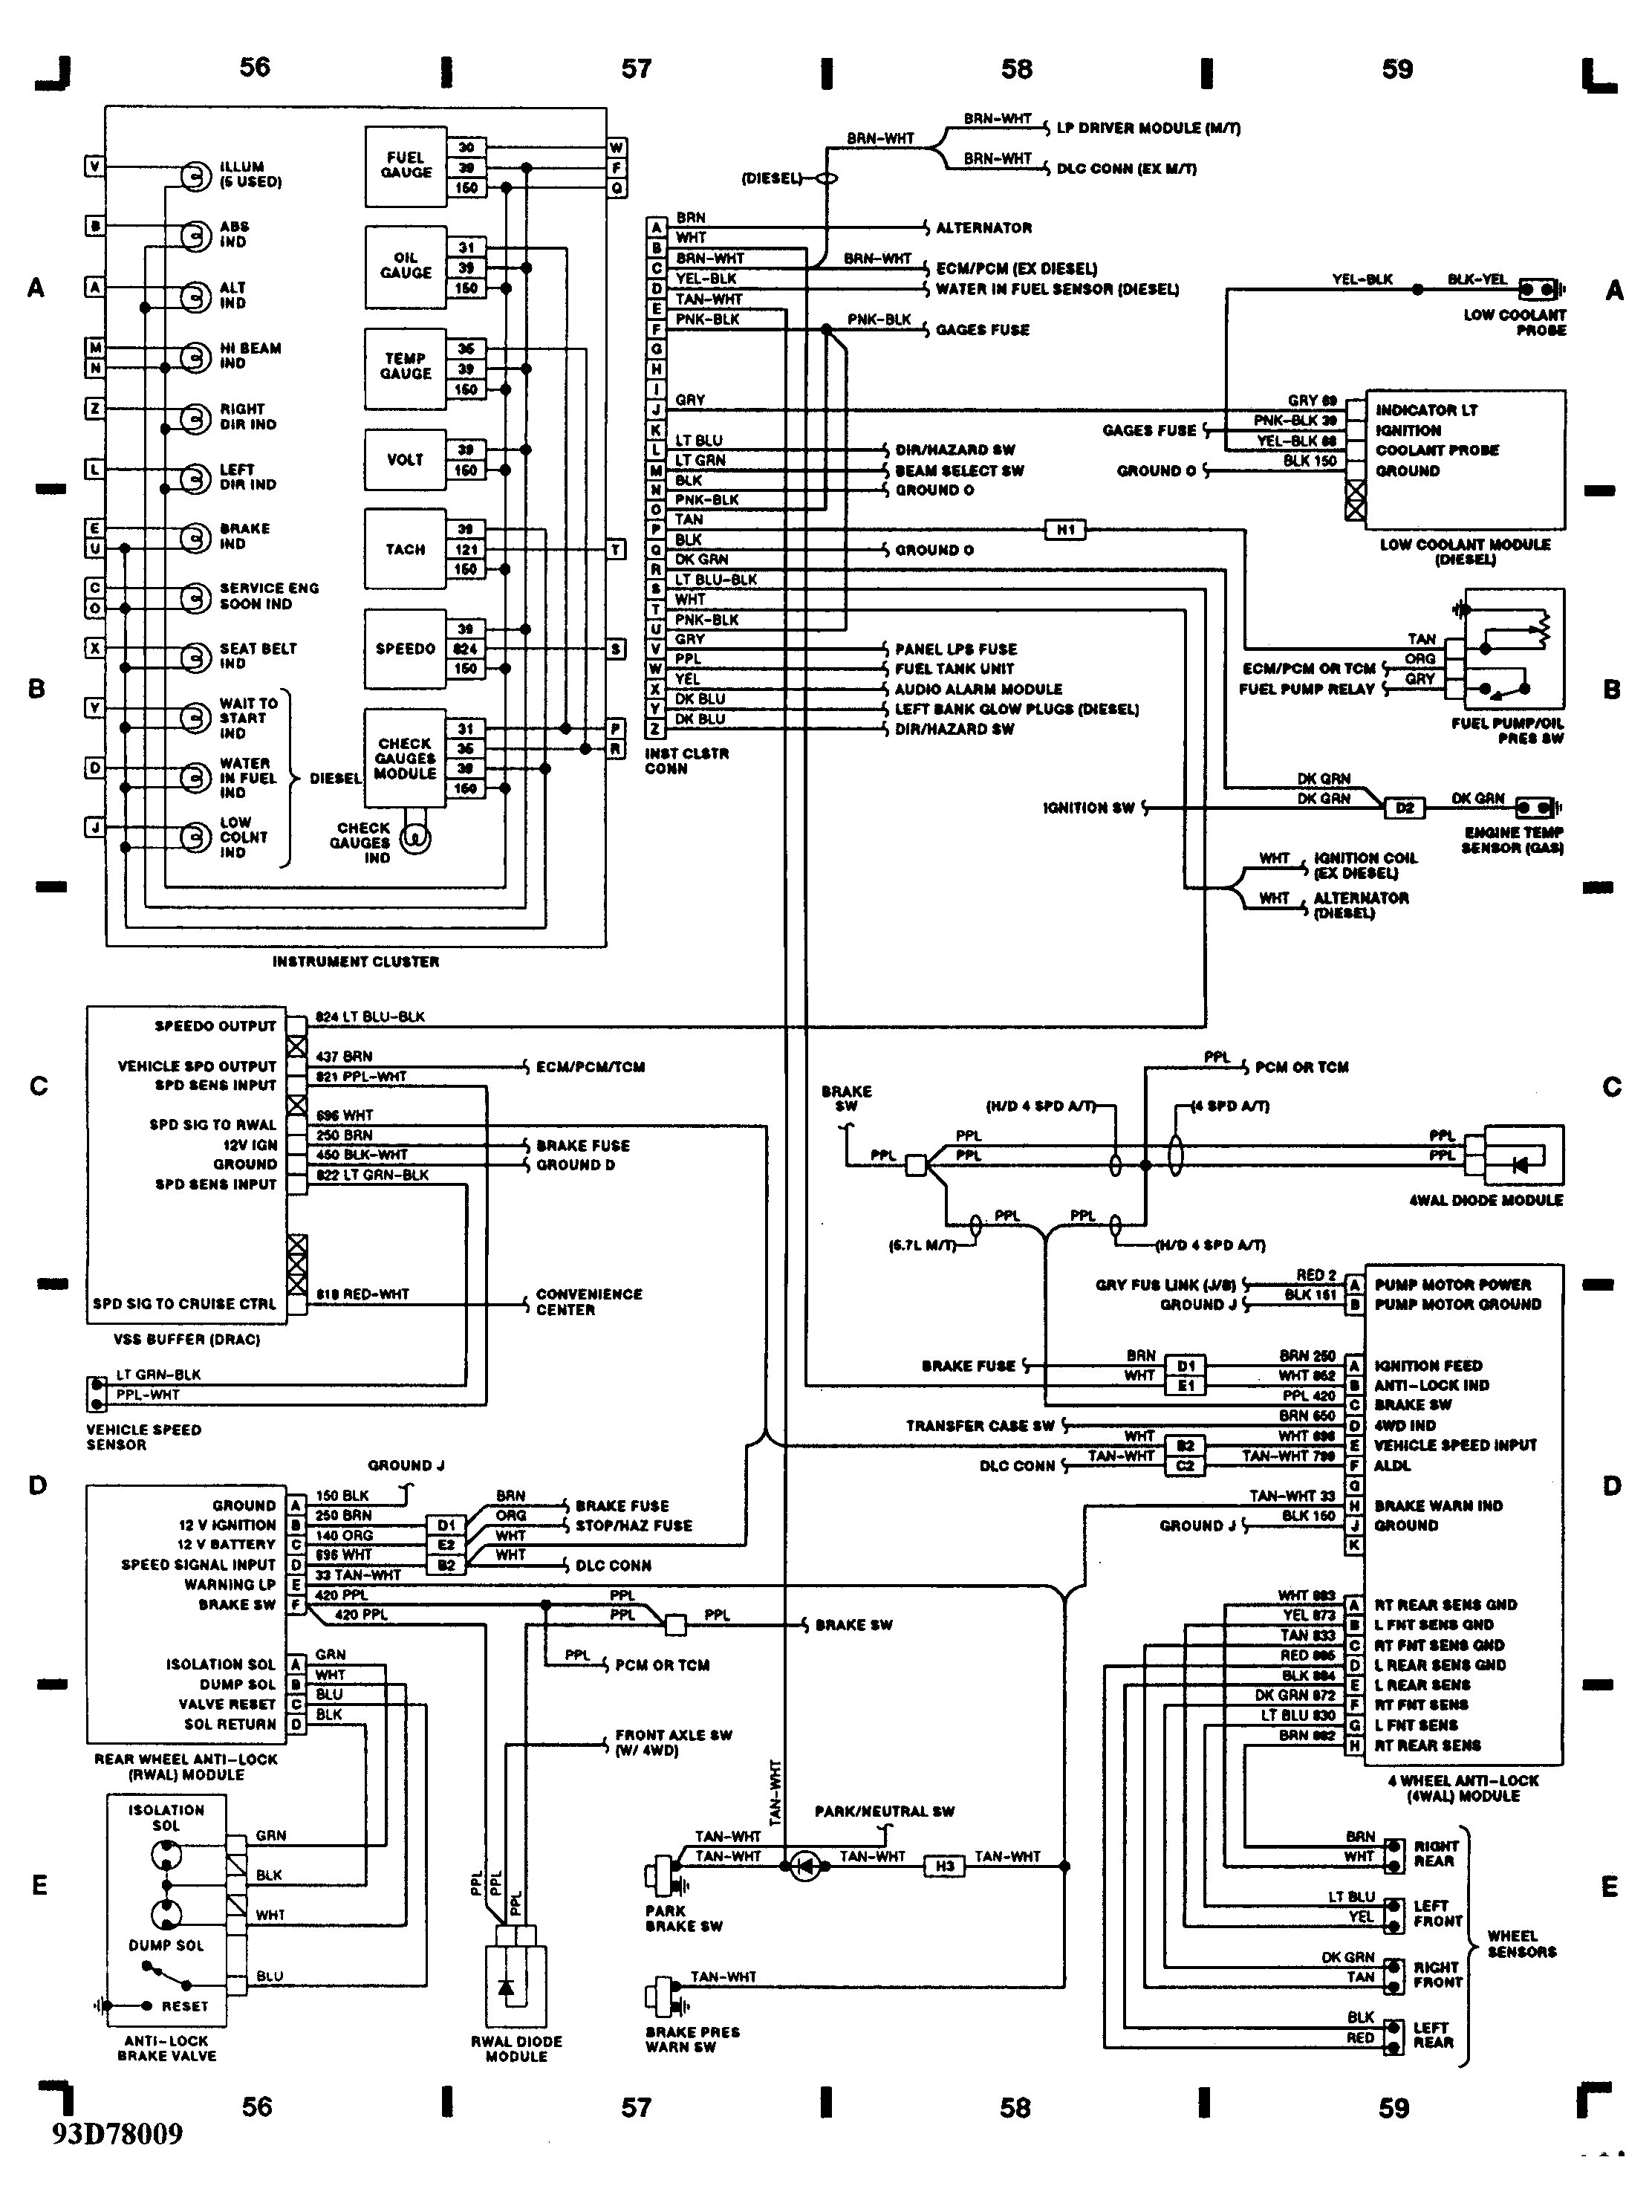 Daihatsu Charade G100 Wiring Diagram Download Diagrams L200 Auto Electrical U2022 Rh Focusnews Co 2017